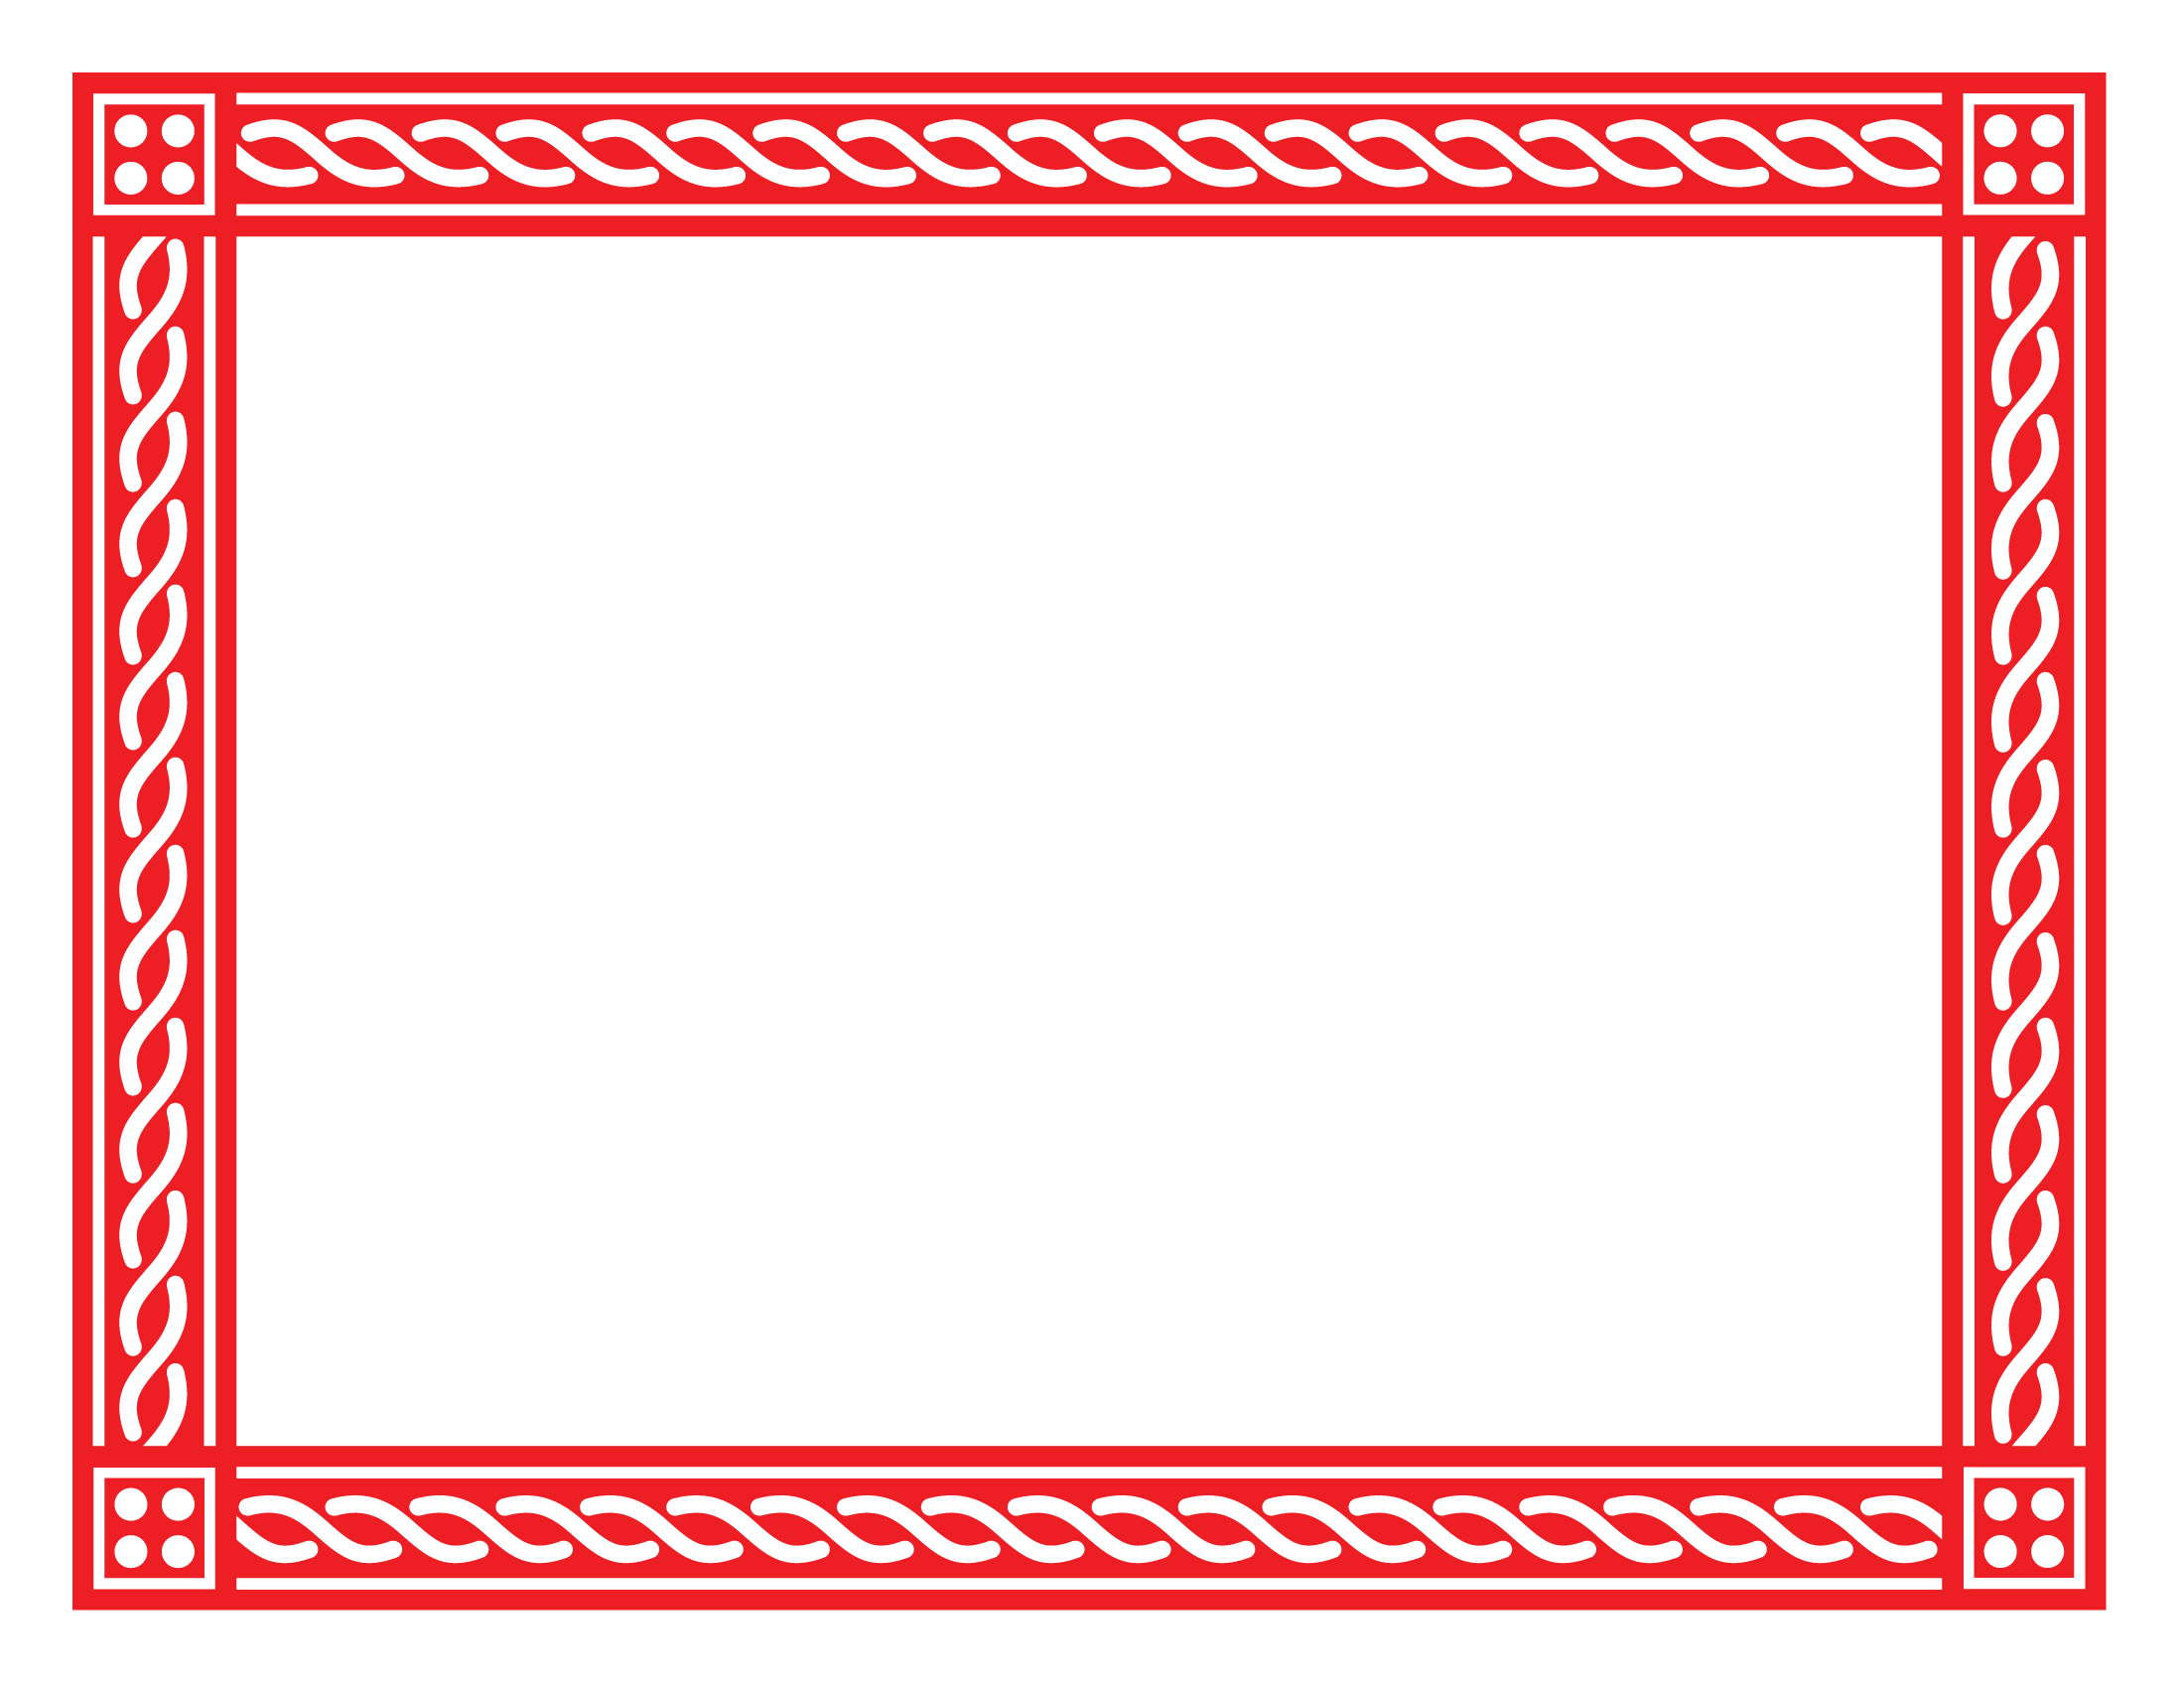 Certificate border templates for word hatchurbanskript certificate border templates for word certificate border 2 certificate border templates for word yelopaper Choice Image